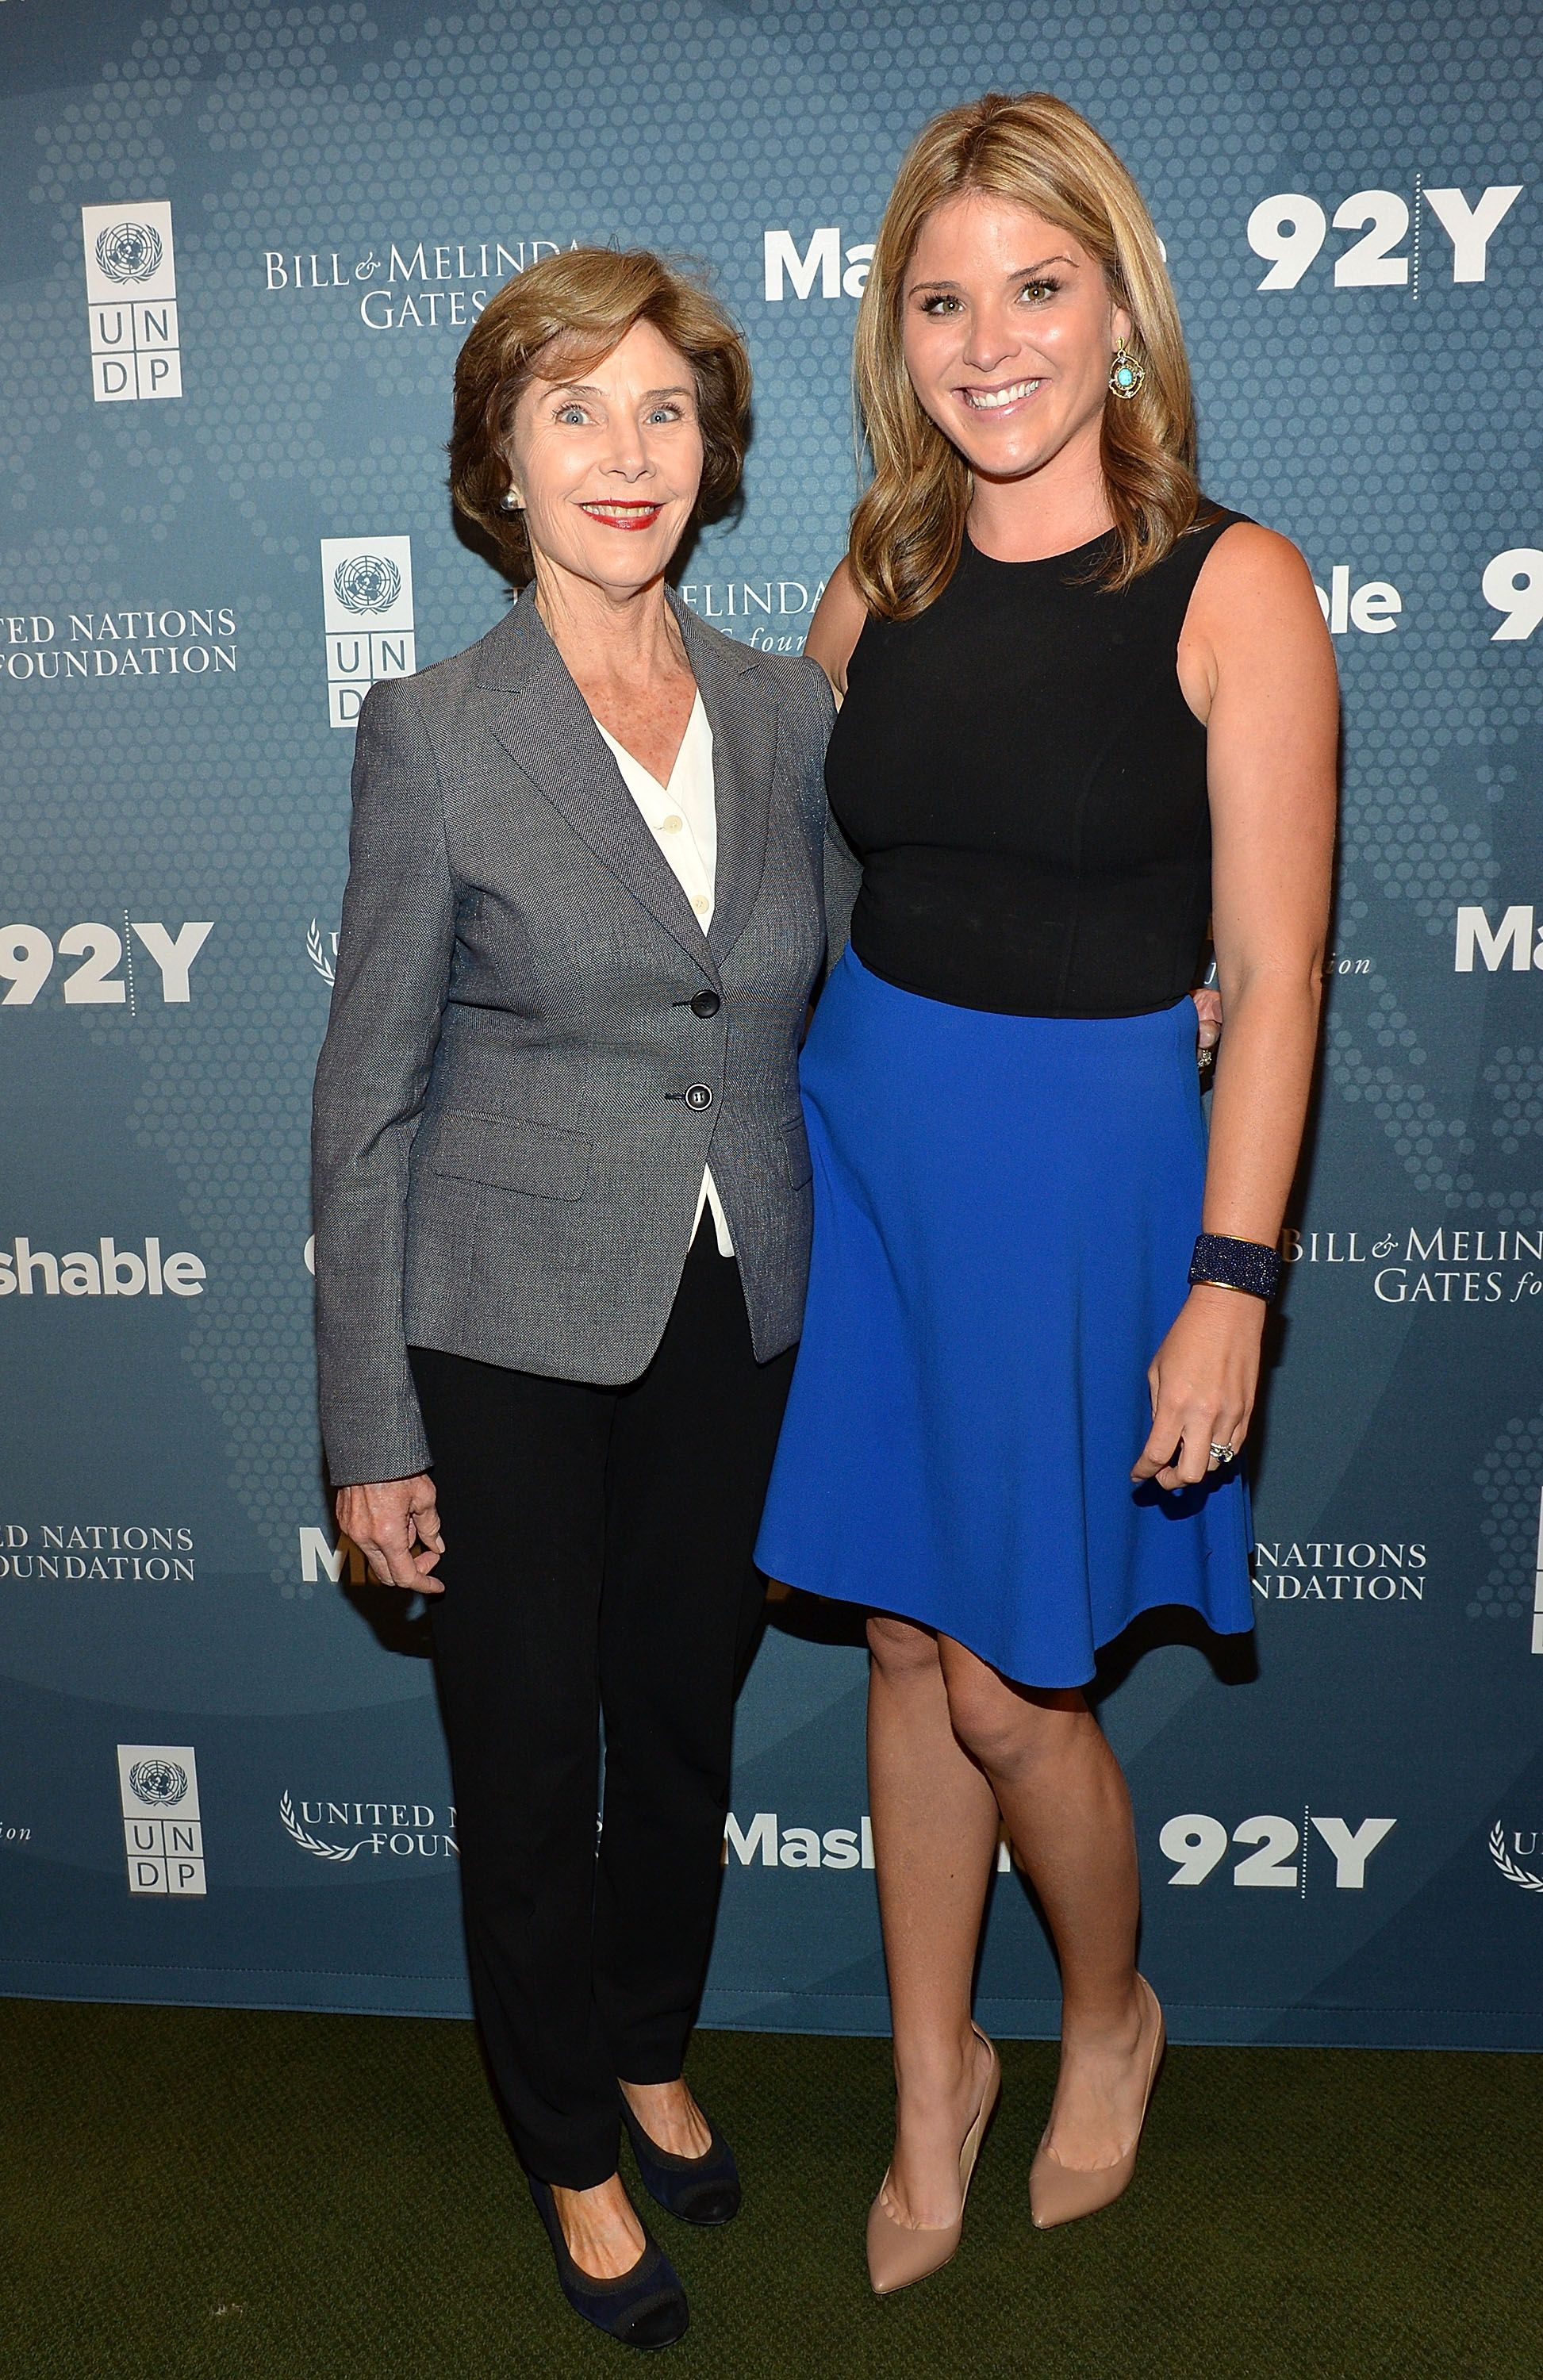 Laura Bush and daughter author Jenna Bush Hager attend the 2014 Social Good Summit in 2014. | Source: Slaven Vlasic/Getty Images